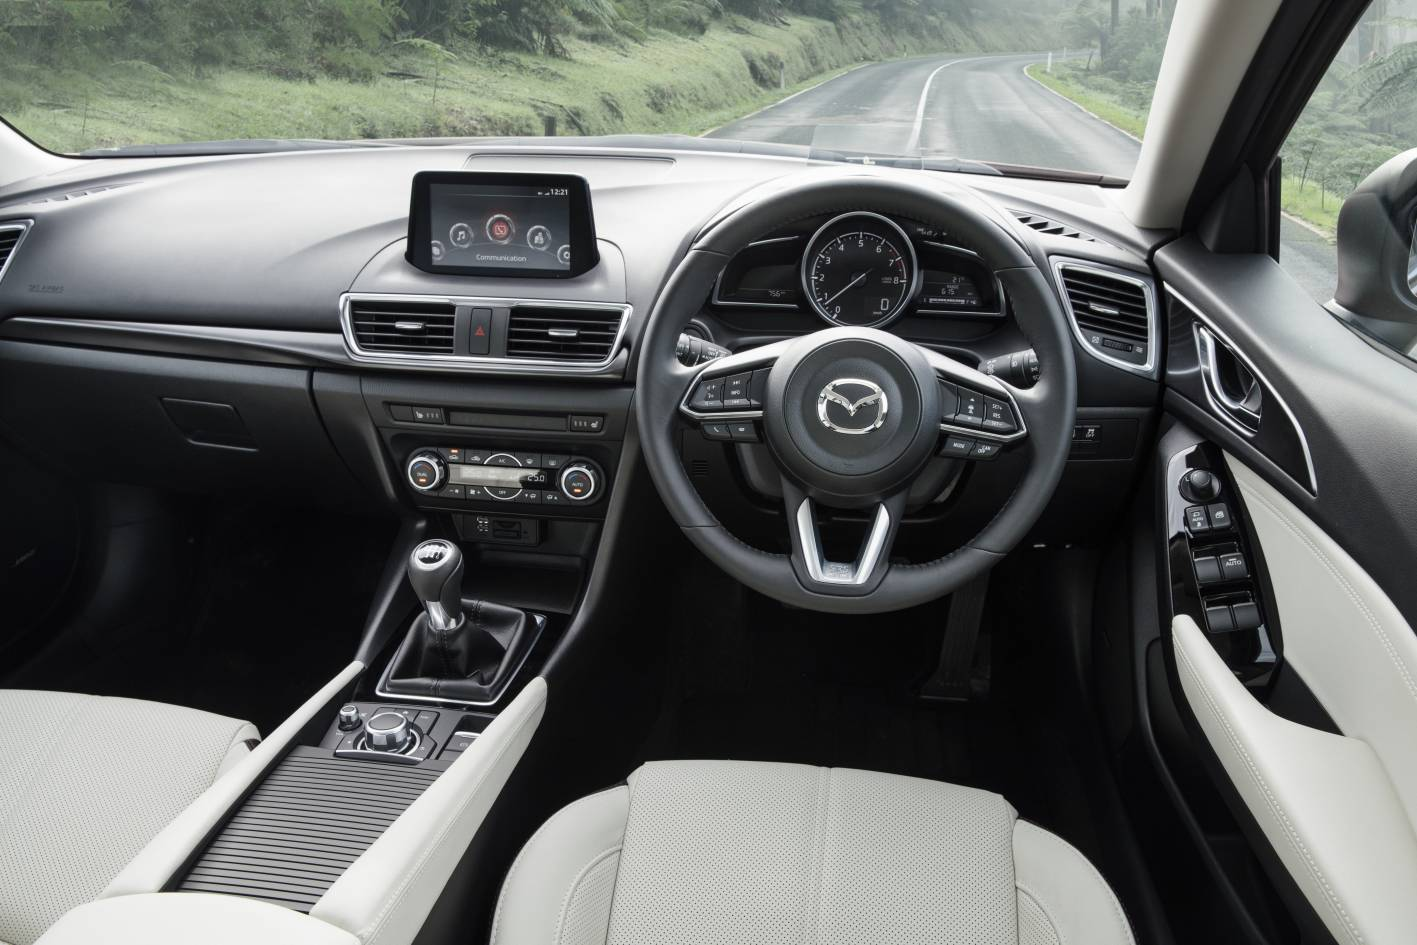 2017 Mazda3 Pricing And Specification